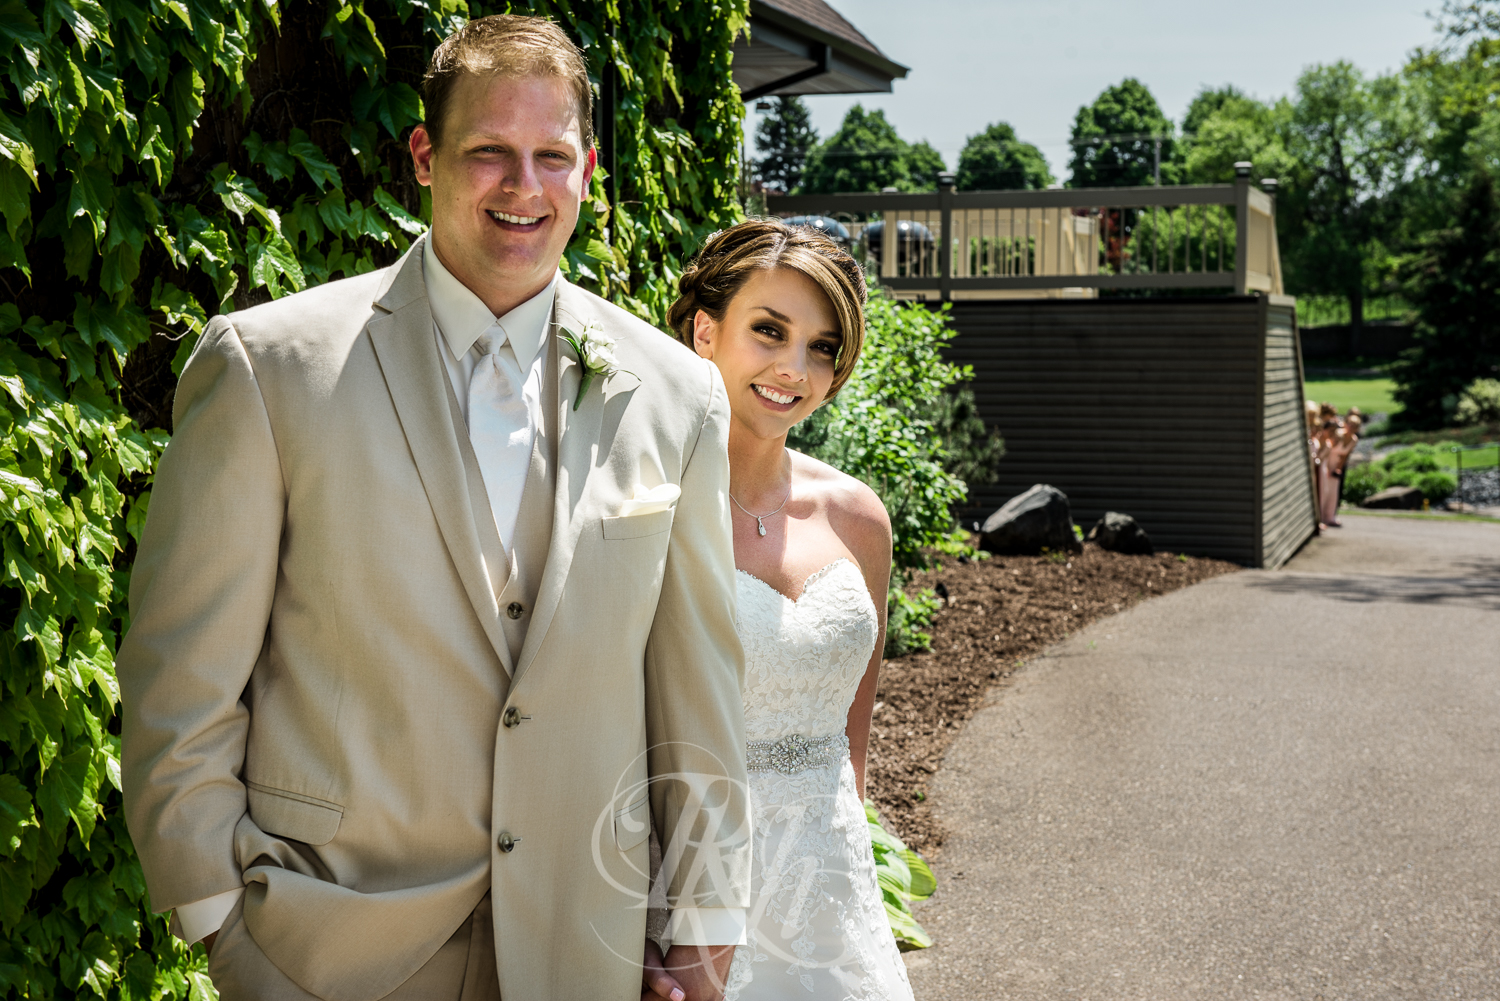 Blog - Whitney & Brent - Minnesota Wedding Photographer - RKH Images - Blog 3-4.jpg